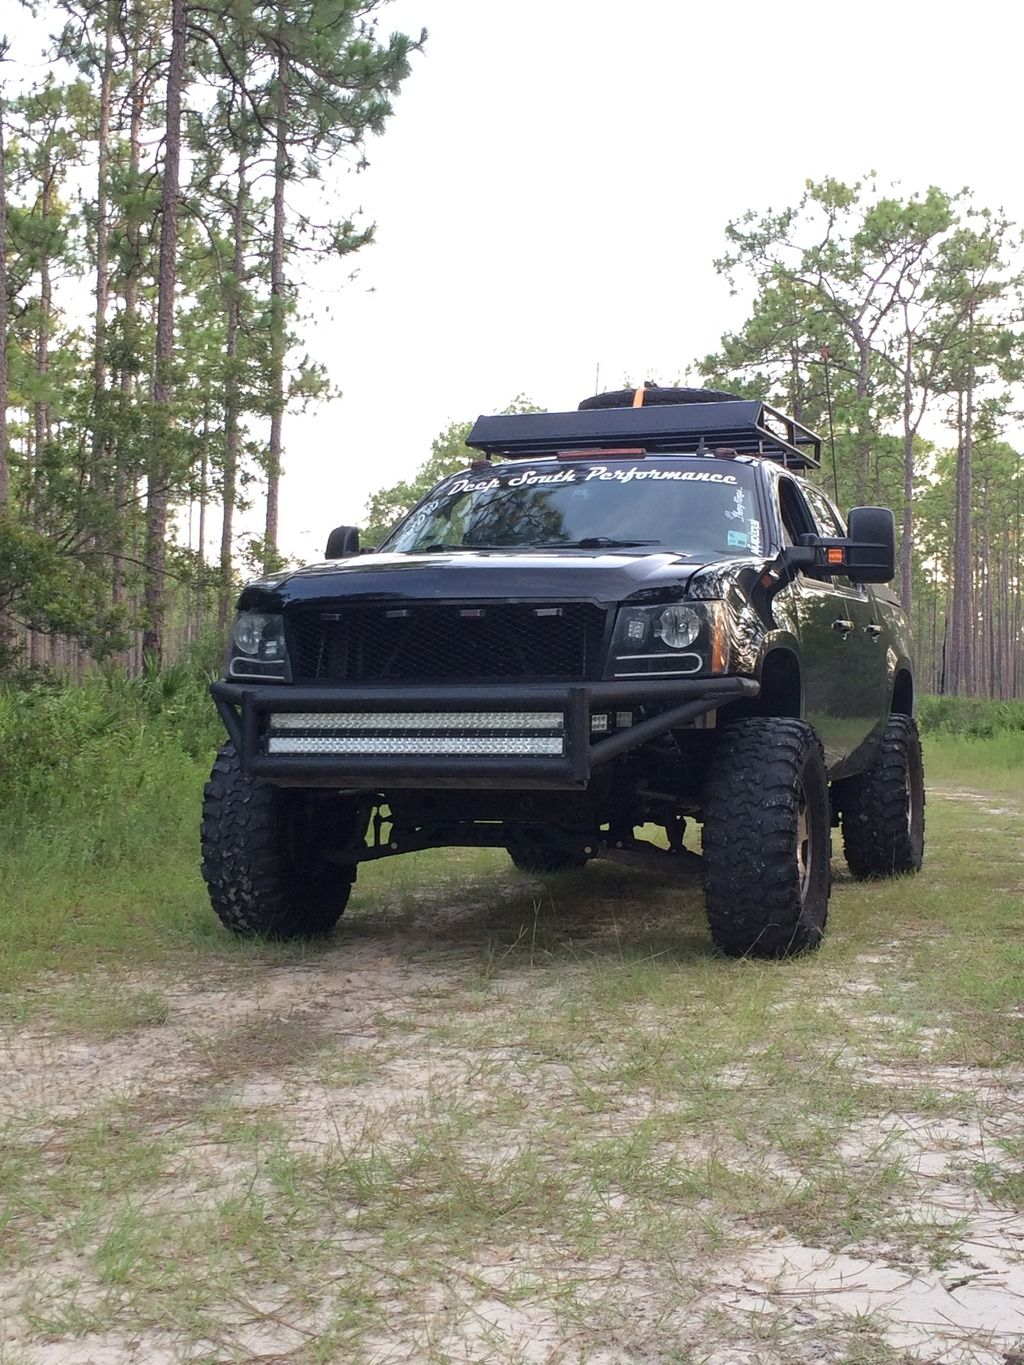 07 Modified Front Bumper Update With Pics Chevy Avalanche Avalanche Truck Chevy Tahoe